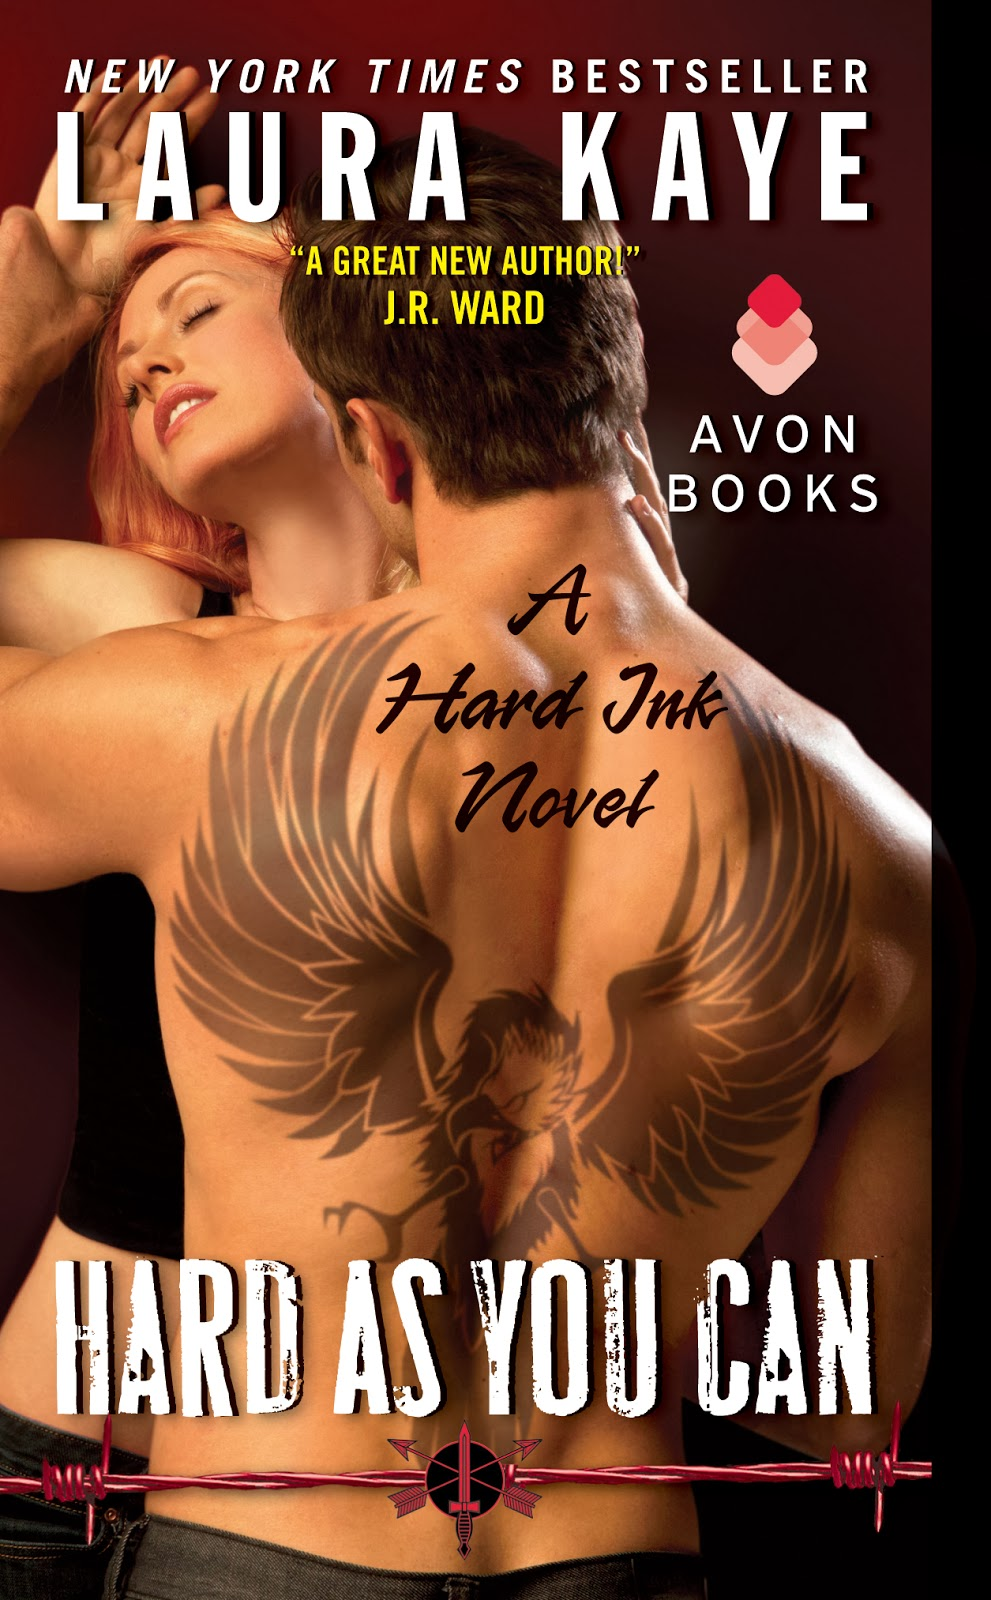 https://www.goodreads.com/book/show/18053019-hard-as-you-can